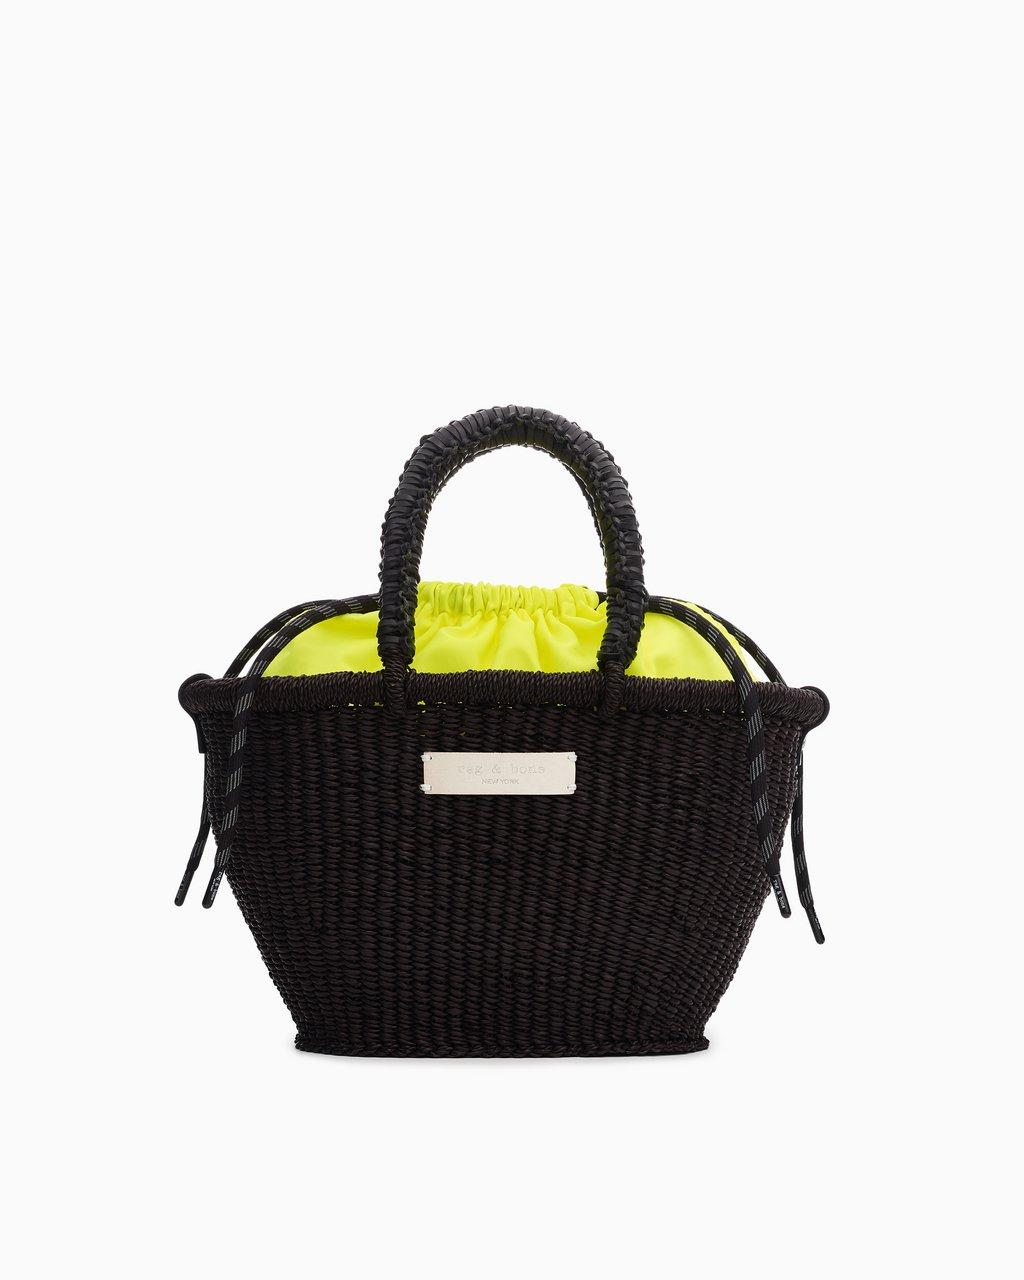 Ghana Woven Tote - Straw